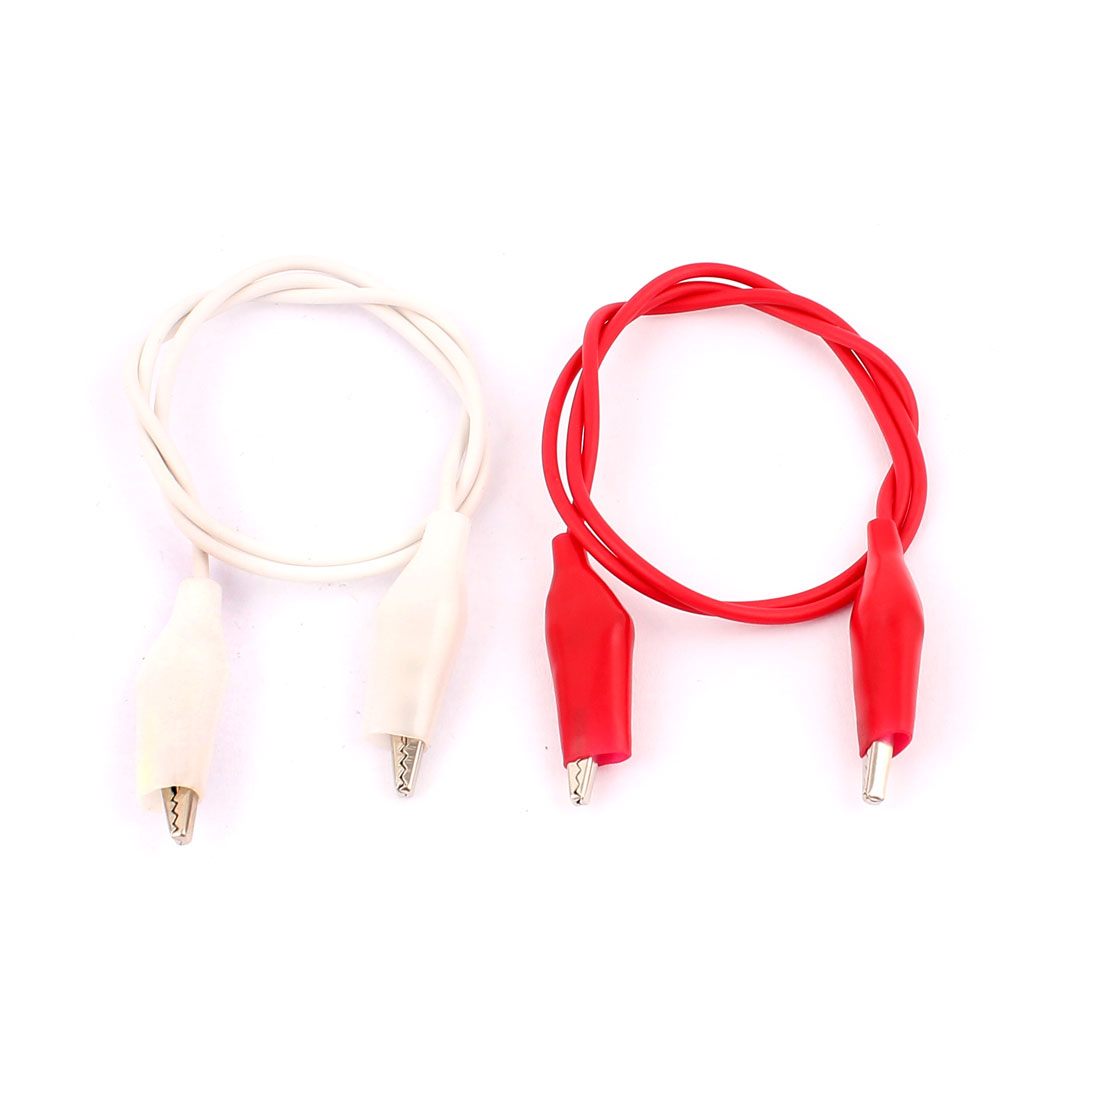 2pcs Red White Dual Ended Alligator Crocodile Roach Clip Test Leads Probe Wire 47cm